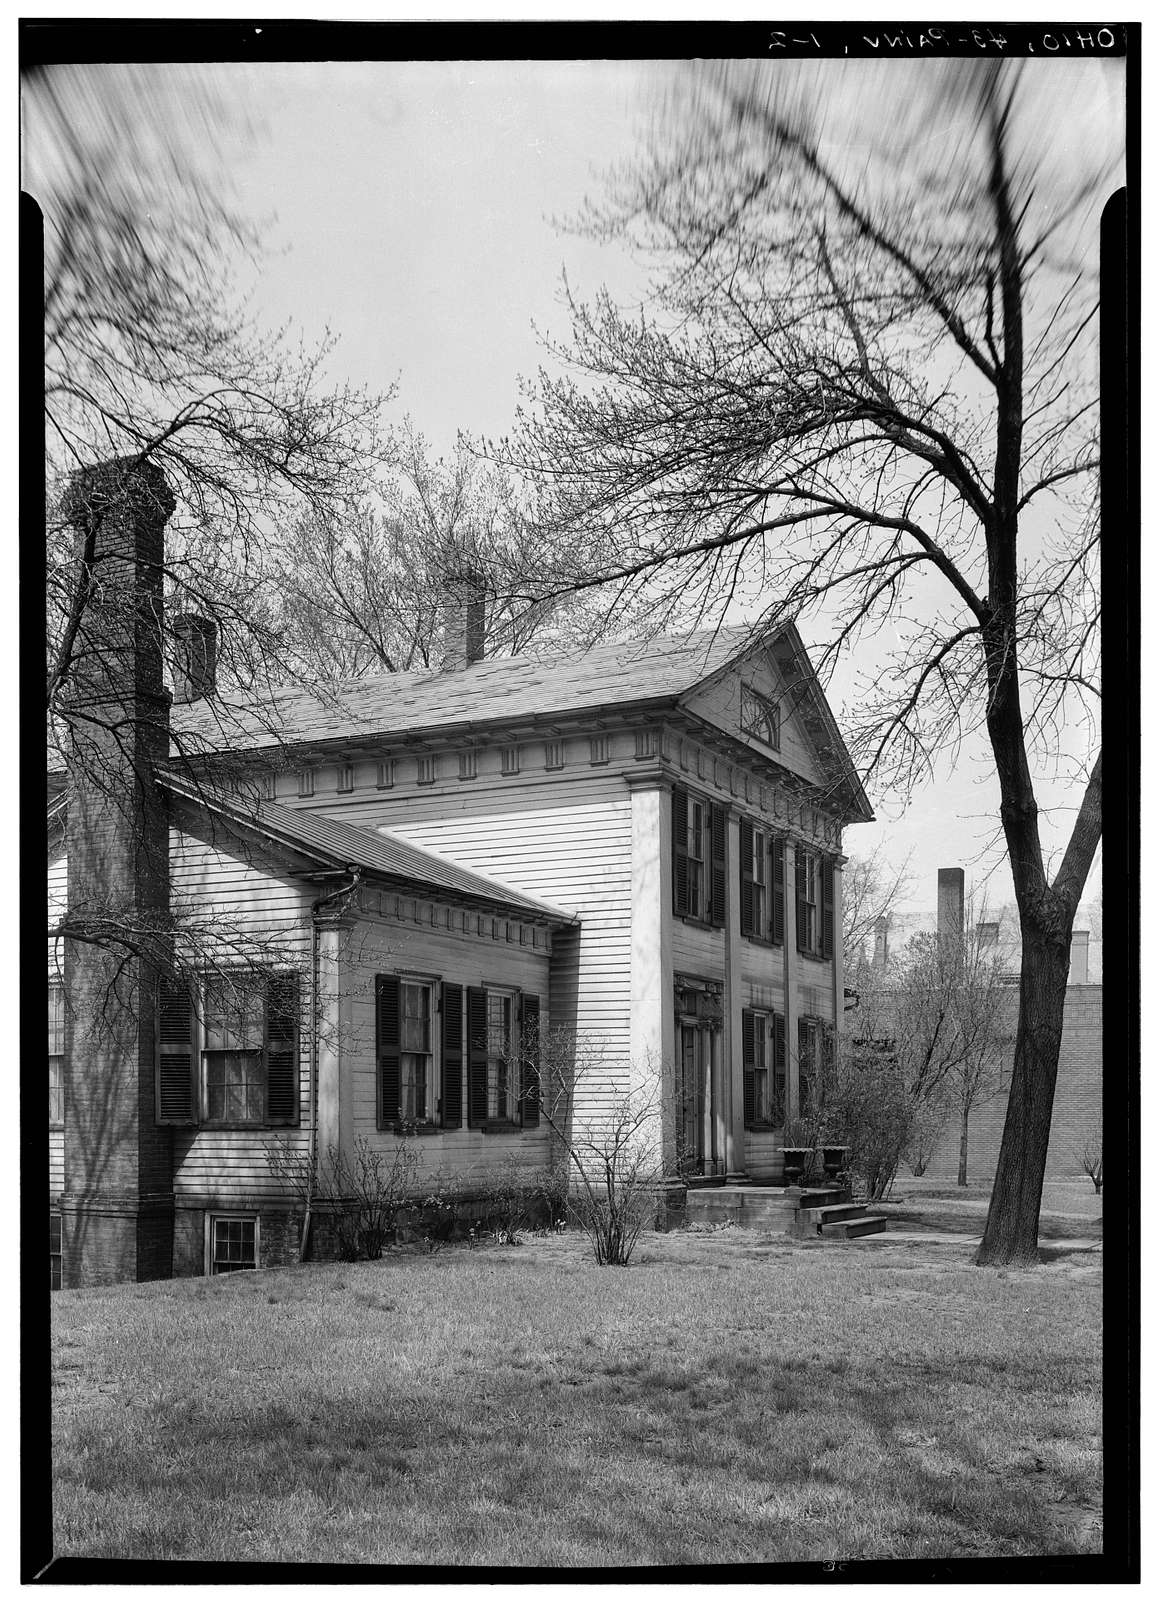 Dr. John H. Mathews House, 309 North State Street, Painesville, Lake County, OH